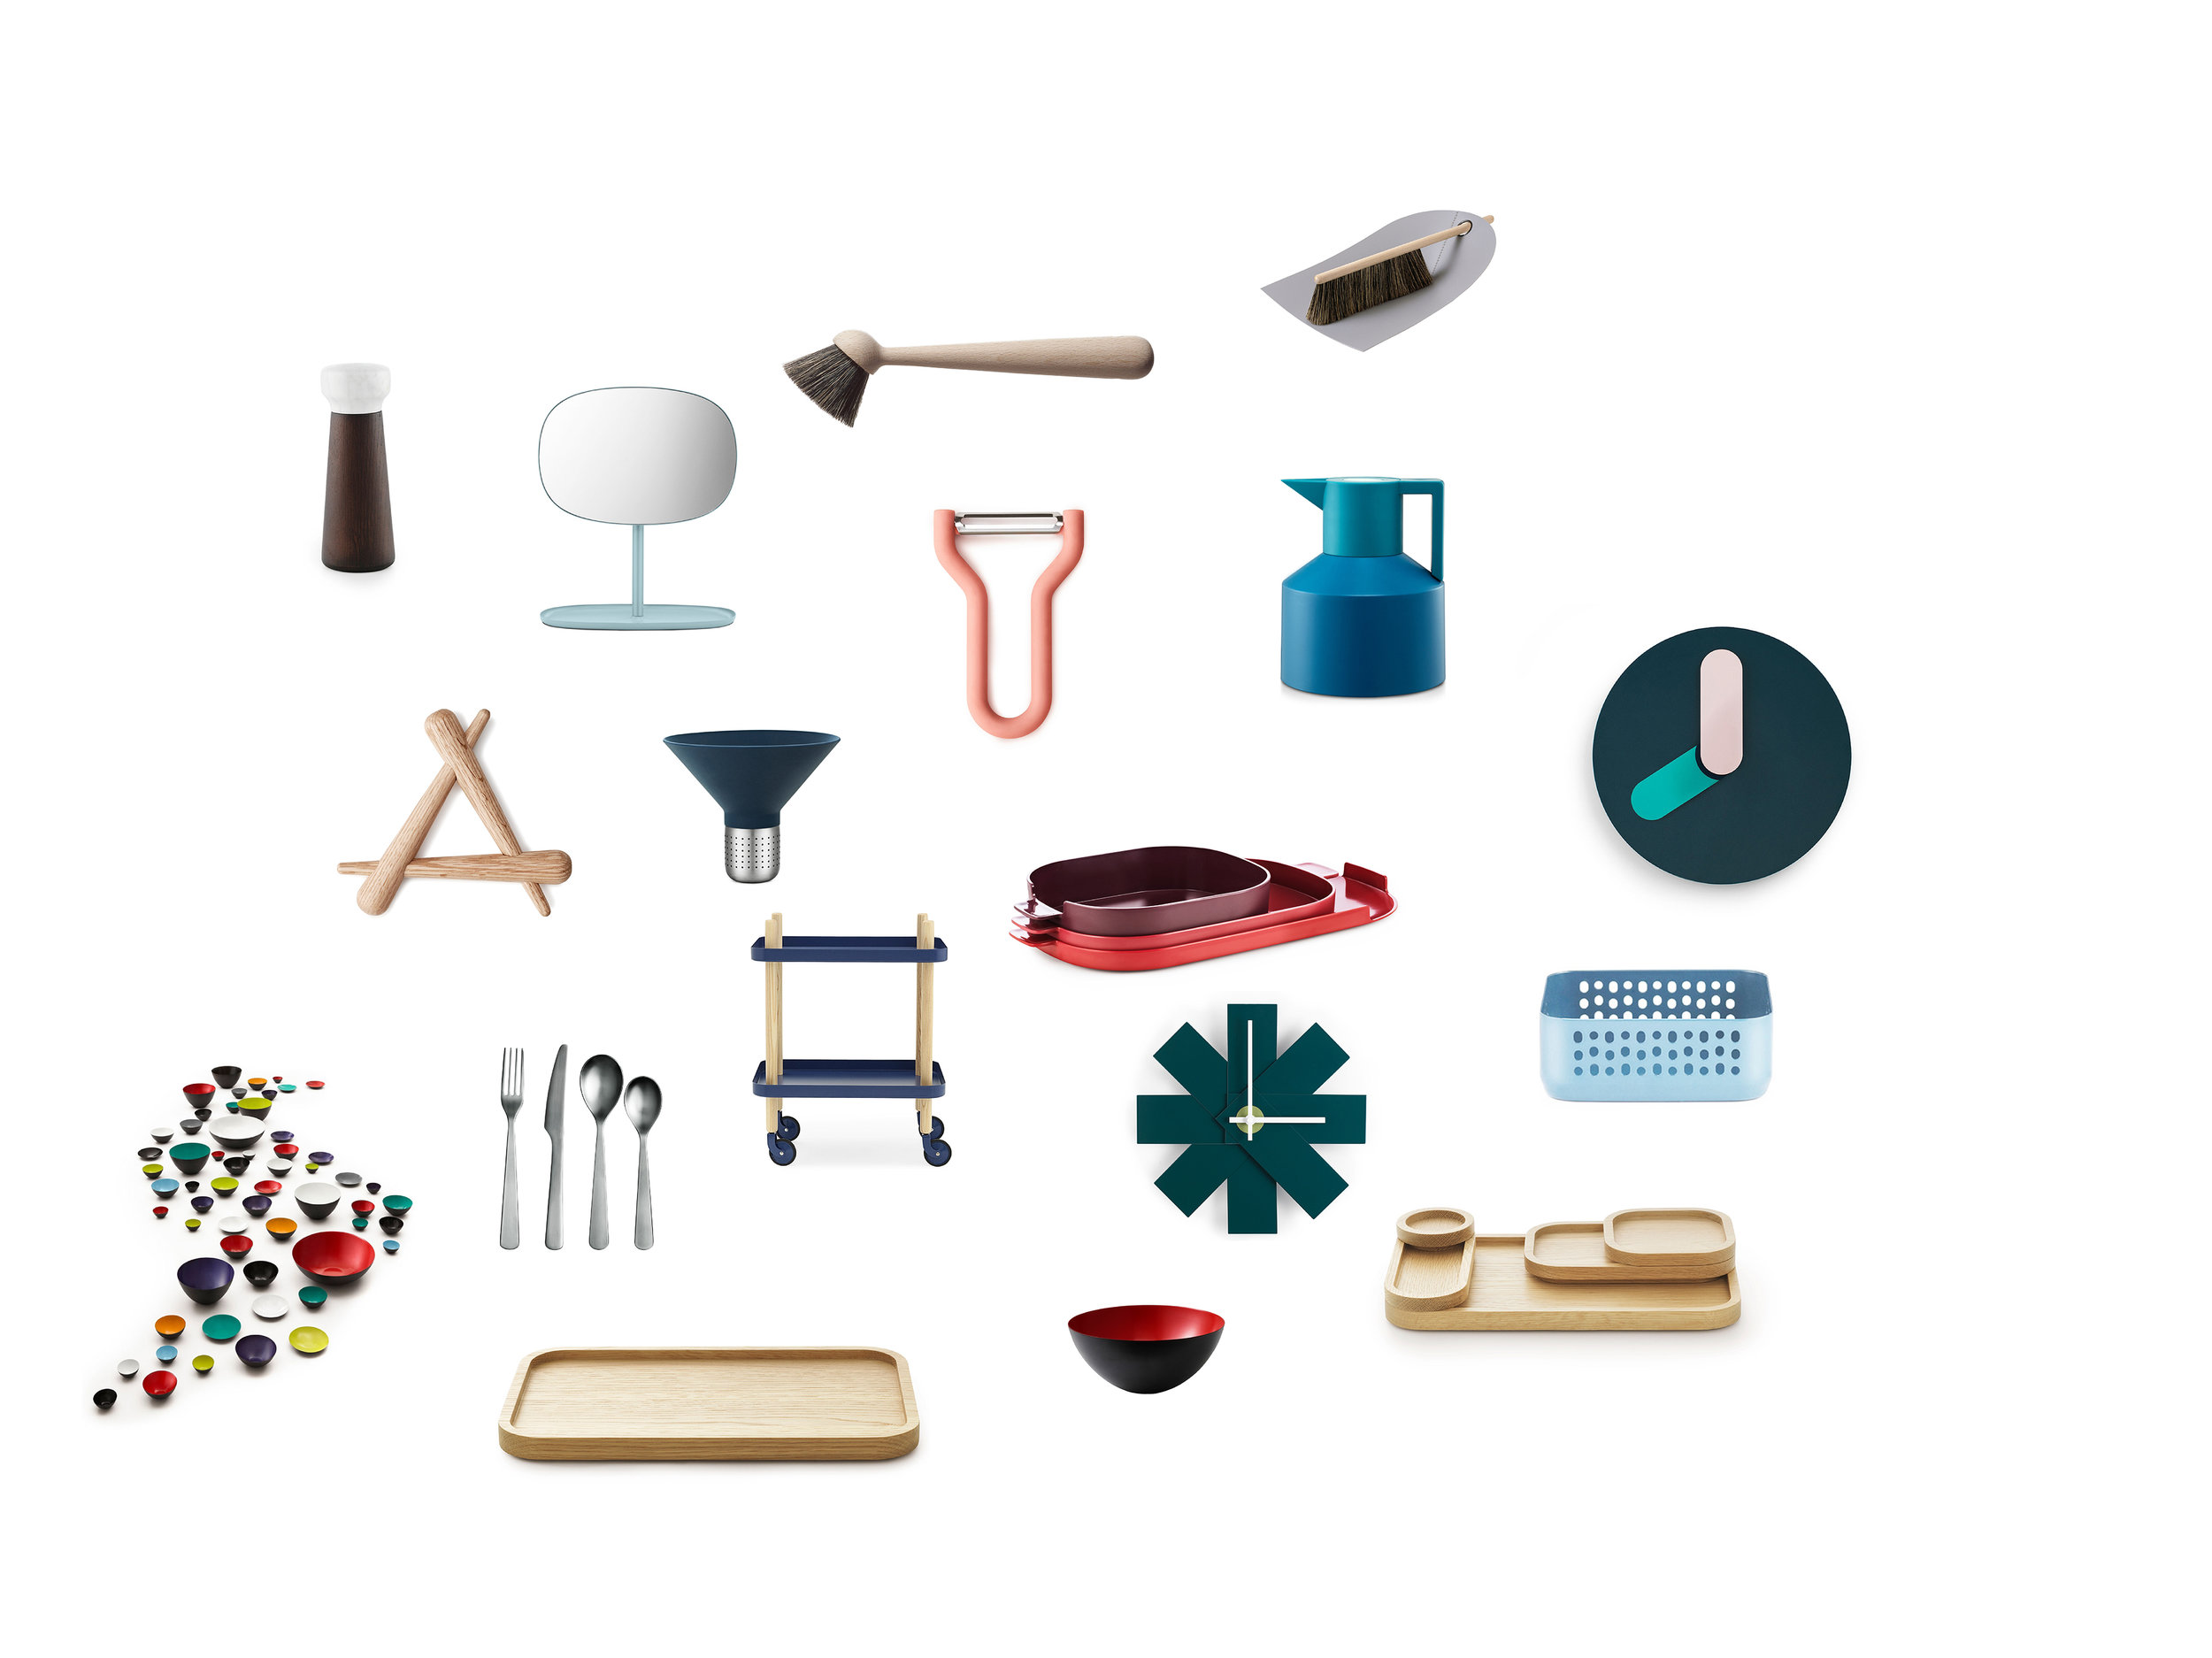 Preliminary Research - During the initial research I looked at the products that normann copenhagen is offering.